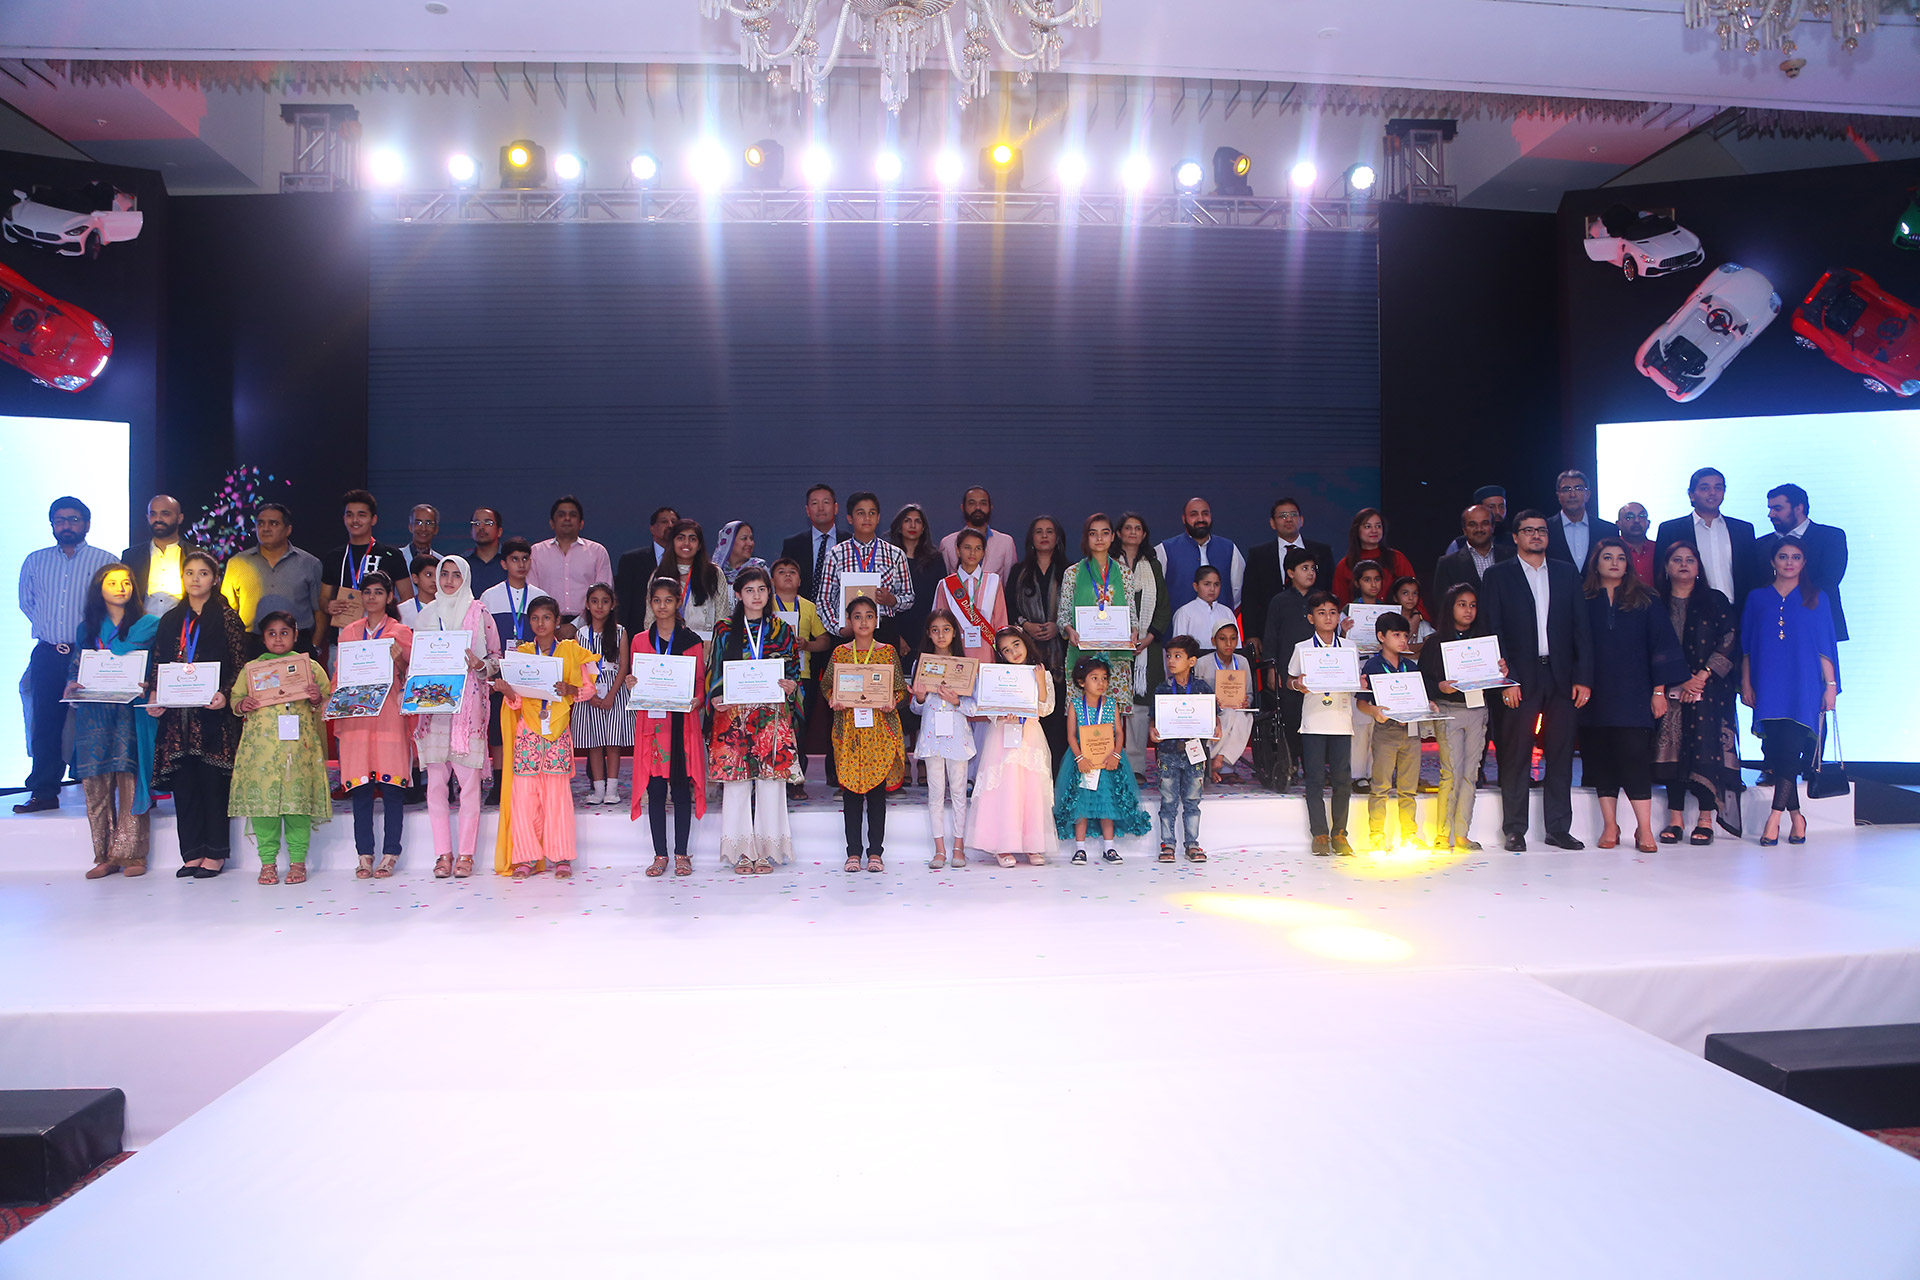 National Champions of 13th Toyota Dream Car Art Contest Announced 2